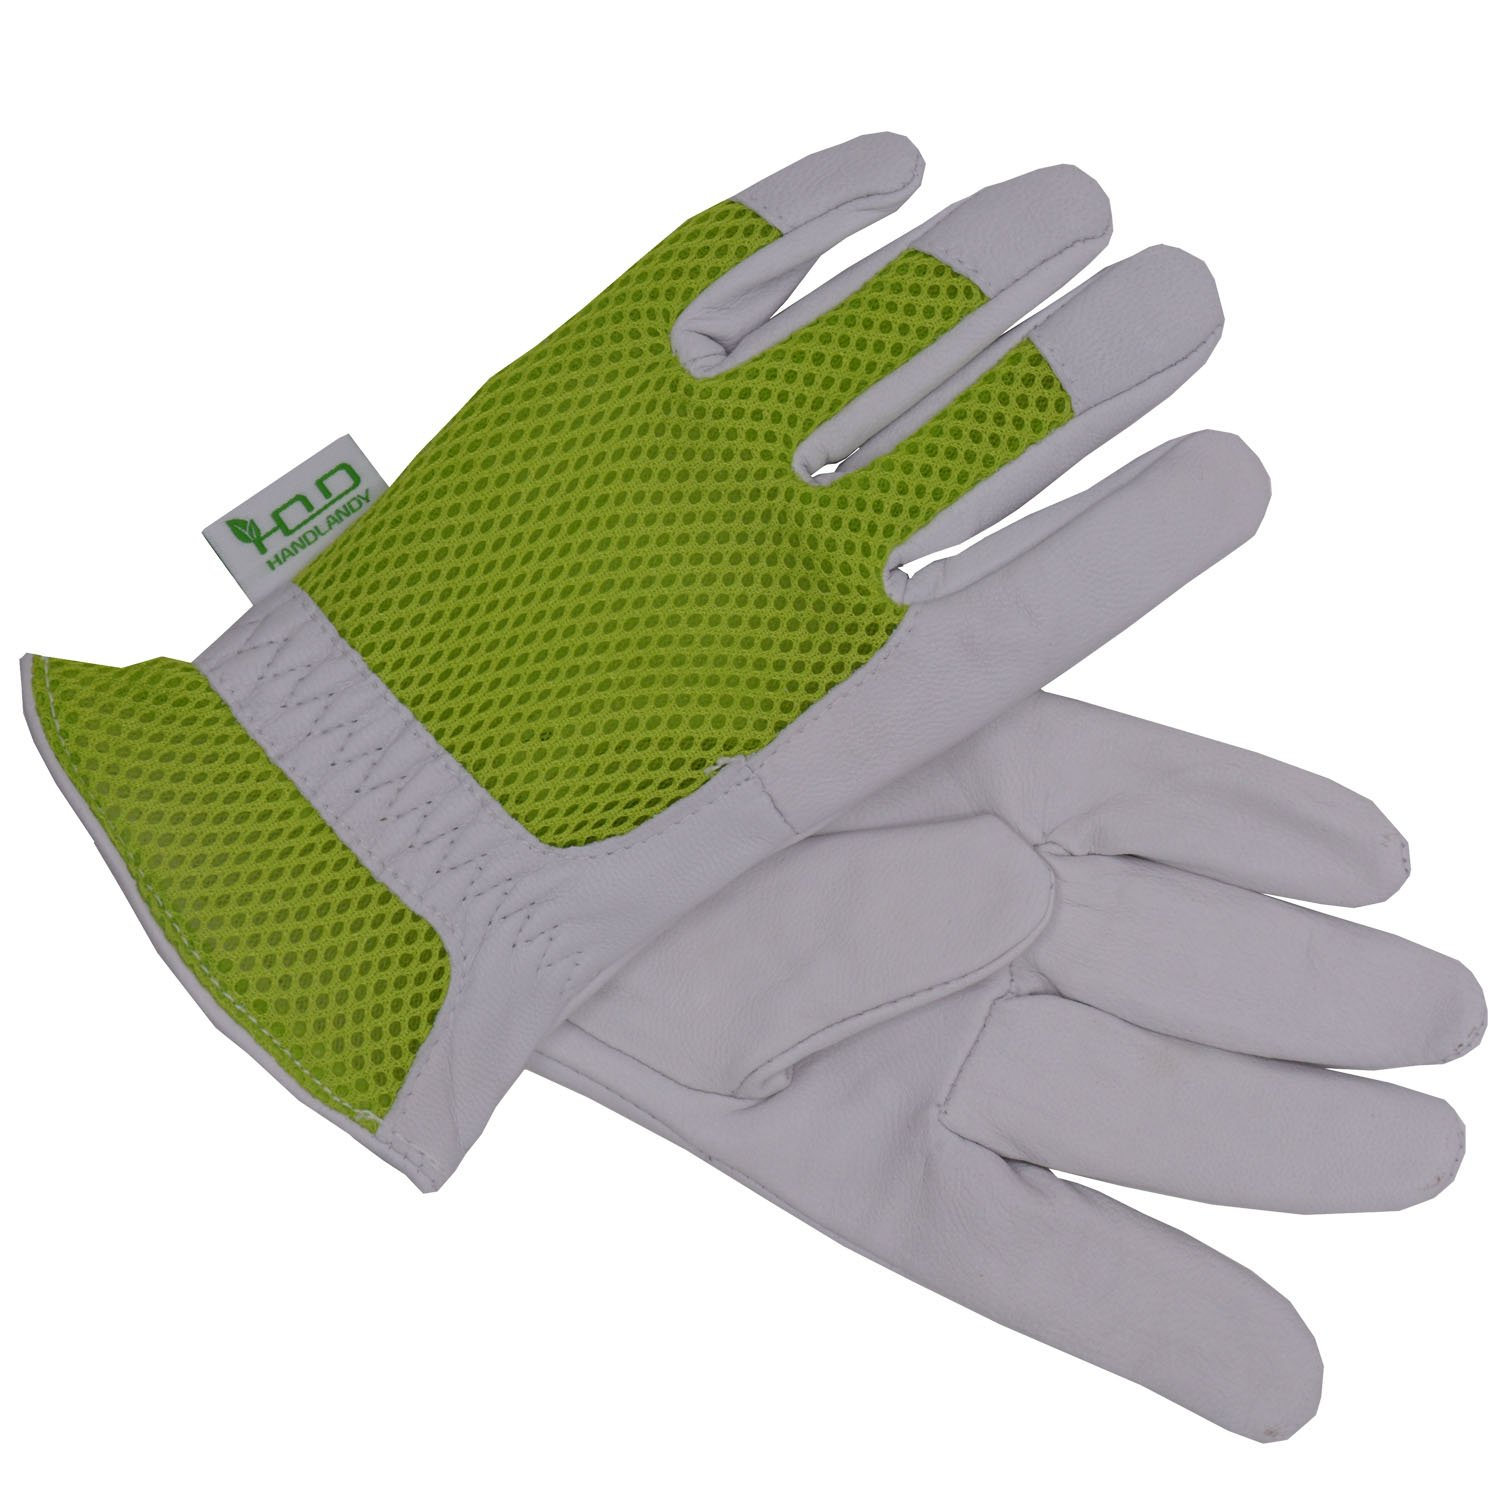 Goatskin Leather Gardening Gloves Women, 3D Mesh Comfort Fit- Improves Dexterity and Breathability Design, Scratch Resistance Garden Working Gloves for Vegetable or Pruning Roses (Small) by HANDLANDY (Image #2)